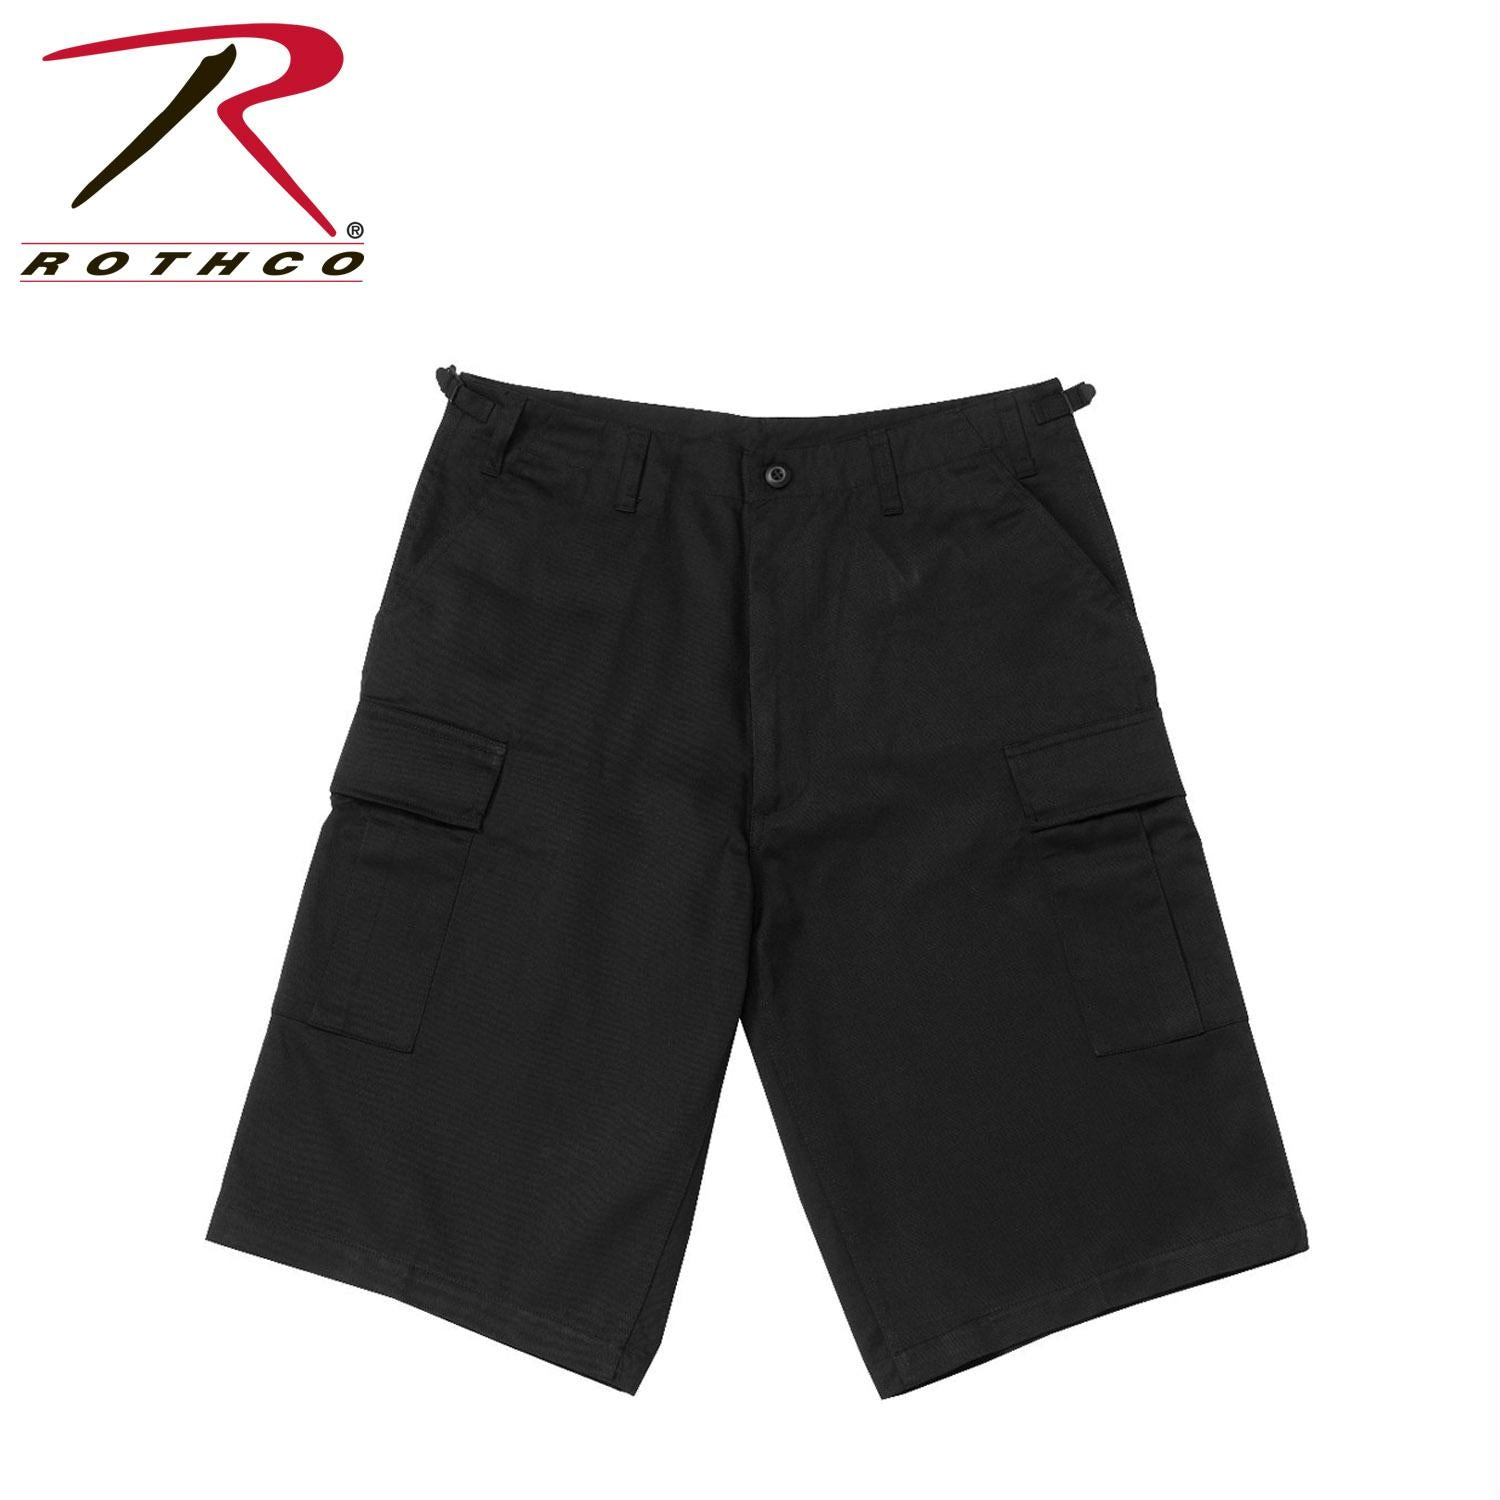 Rothco Long Length BDU Short - Black / 2XL